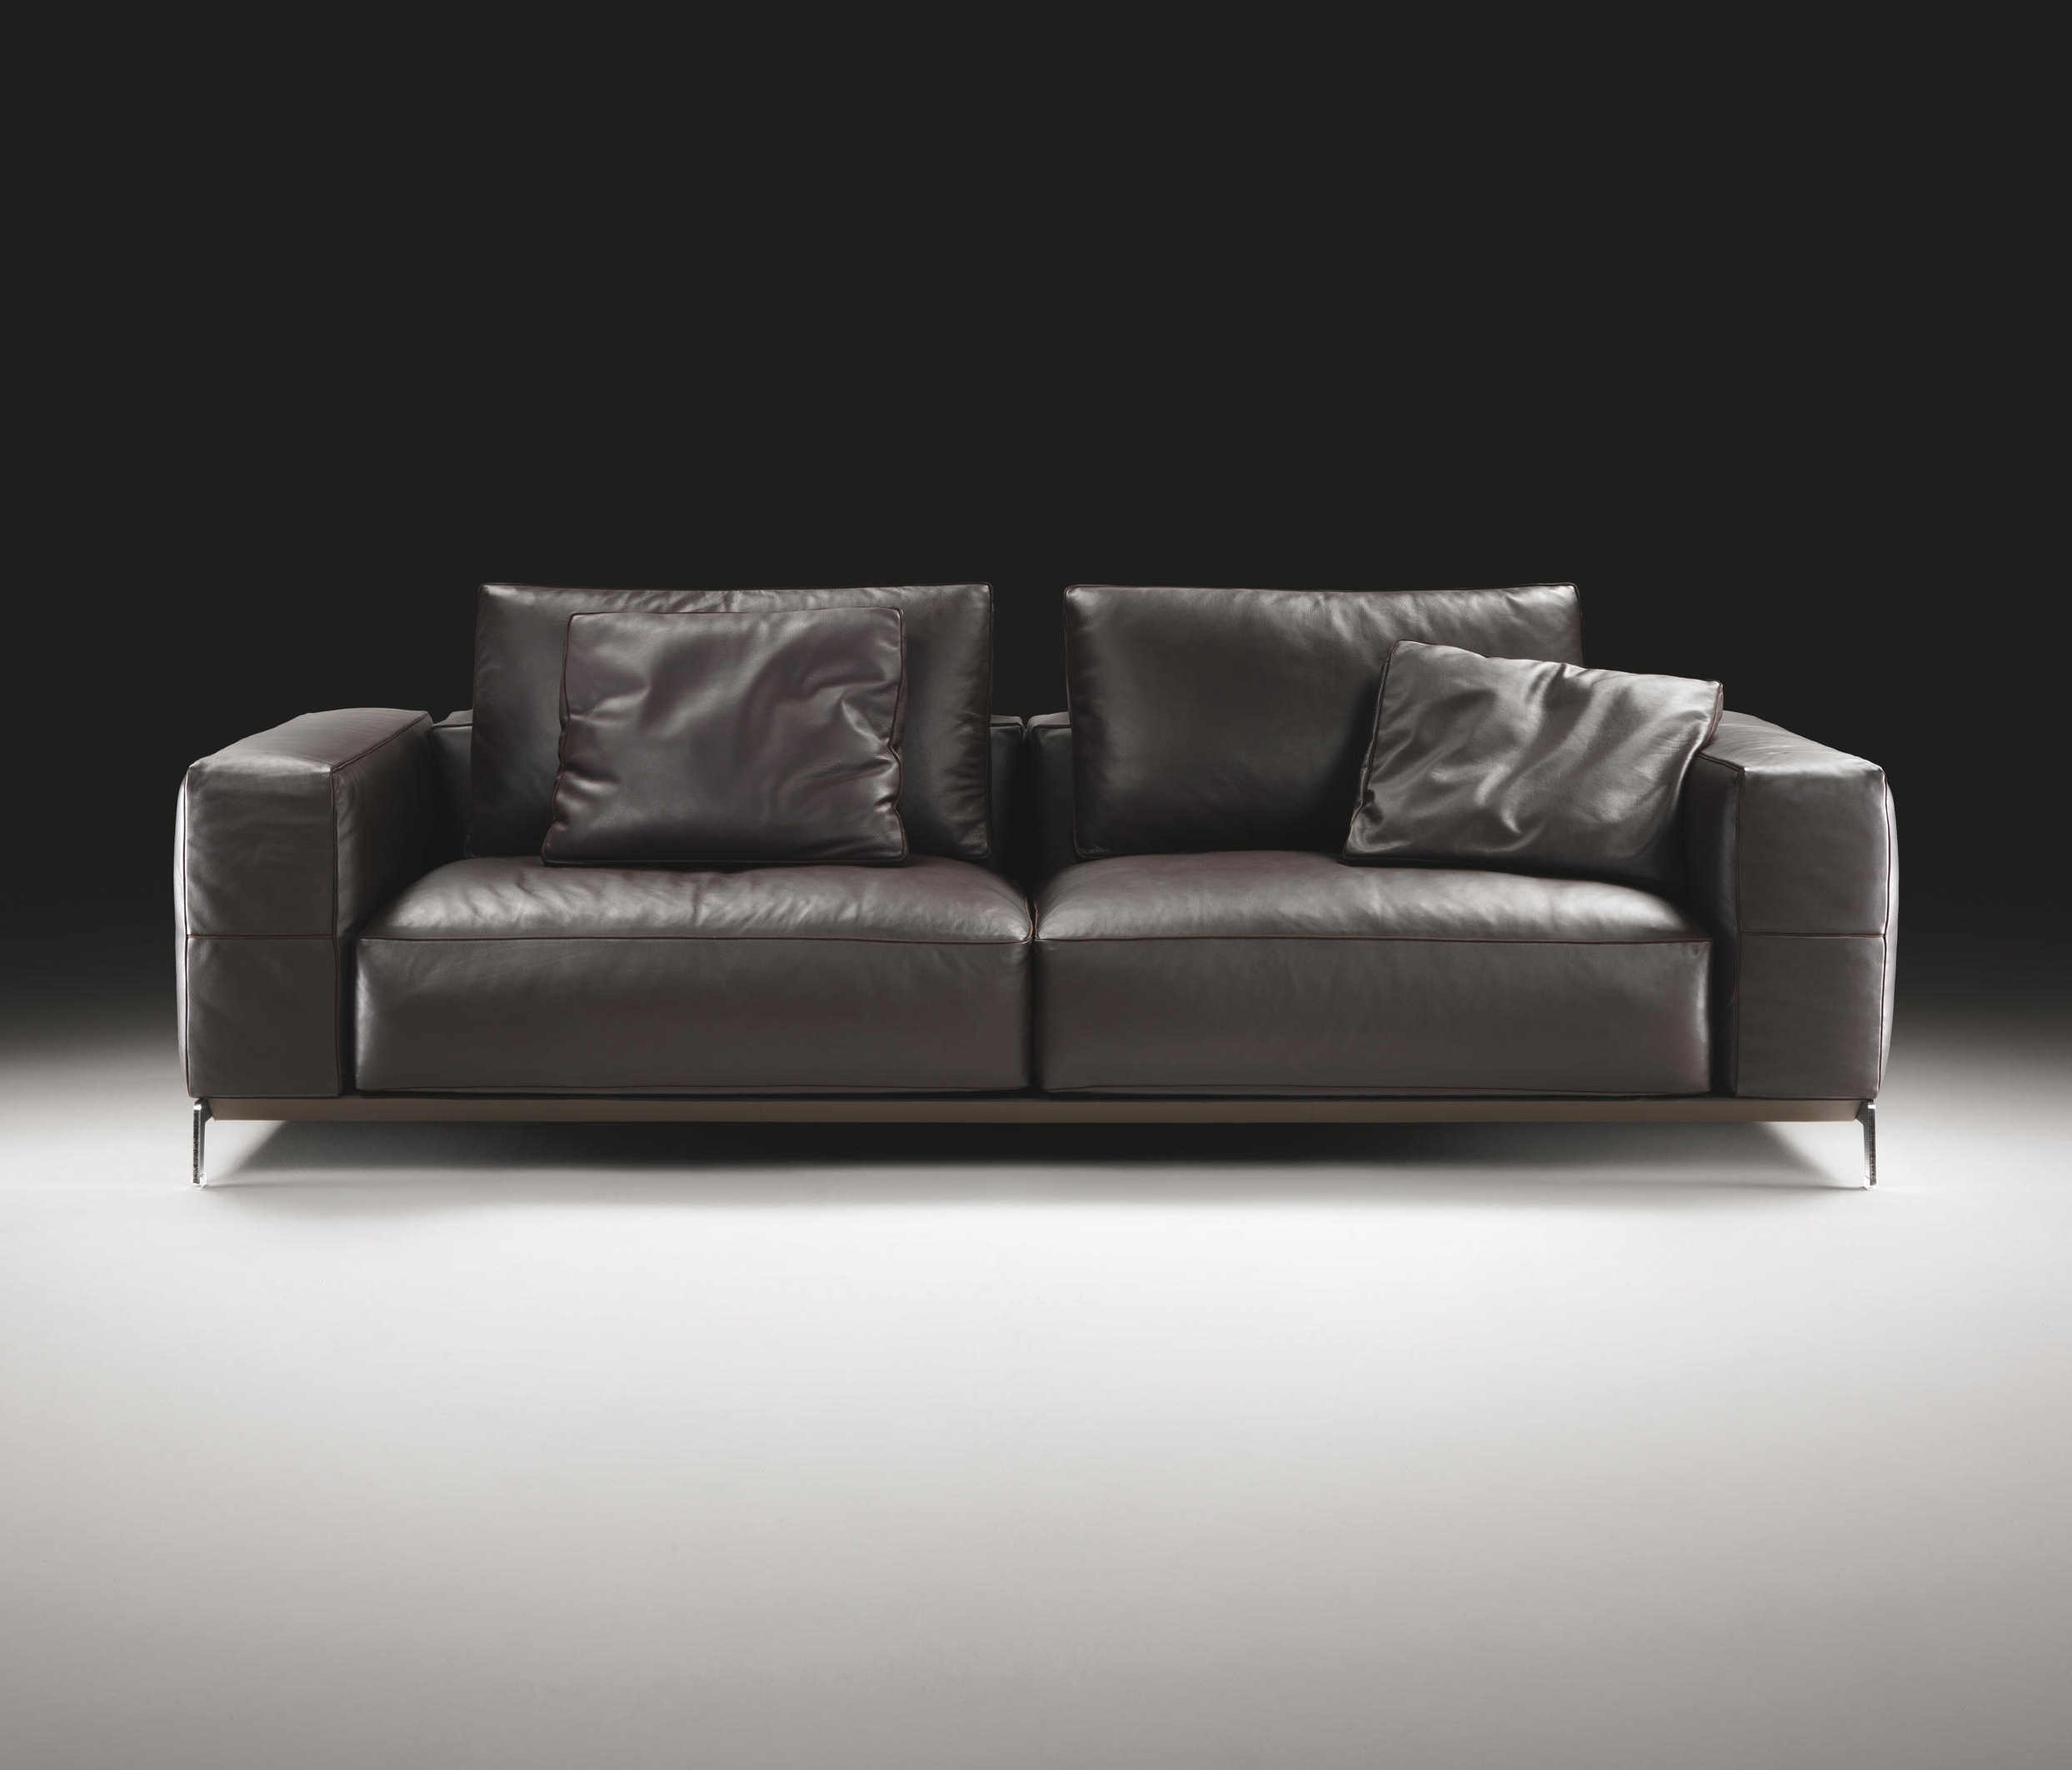 Architonic Within Most Recent Flexform Sofas (View 4 of 20)